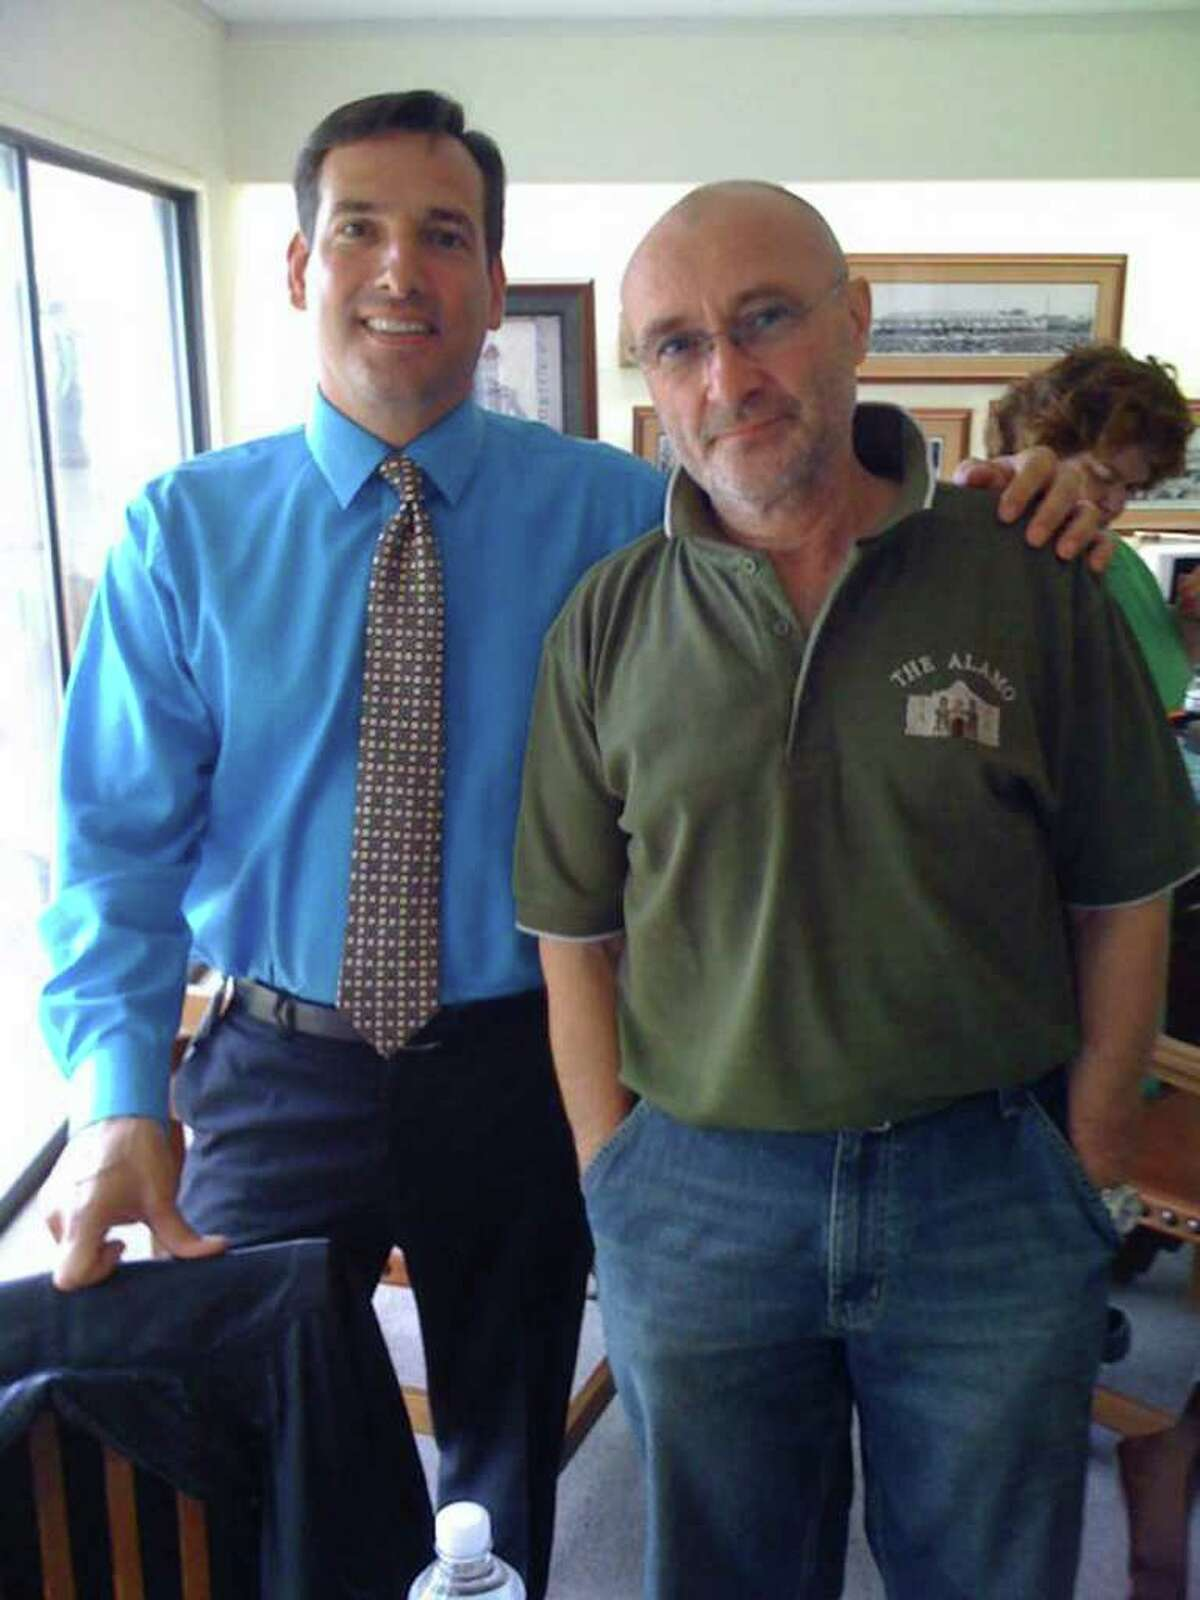 Tony Caridi, the Alamo's former director of marketing and public relations, poses with singer and Alamo enthusiast Phil Collins in 2010. Caridi was fired by the Daughters of the Republic of Texas for alleged inappropriate use of work computers and other employee resources.